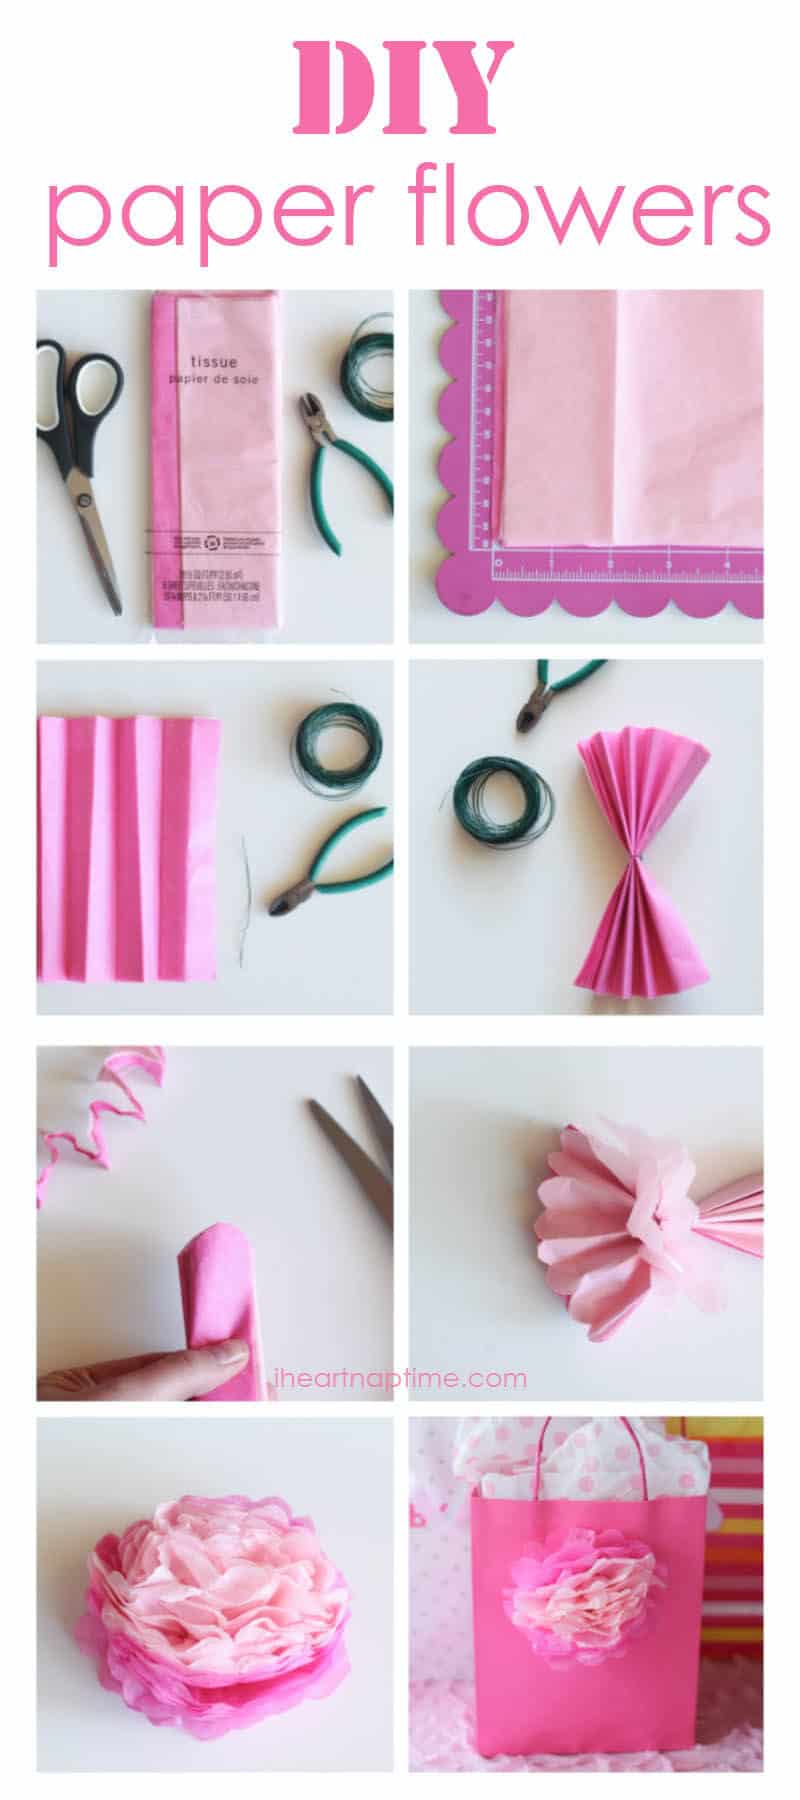 DIY tissue paper flowers ...super easy and inexpensive to make!